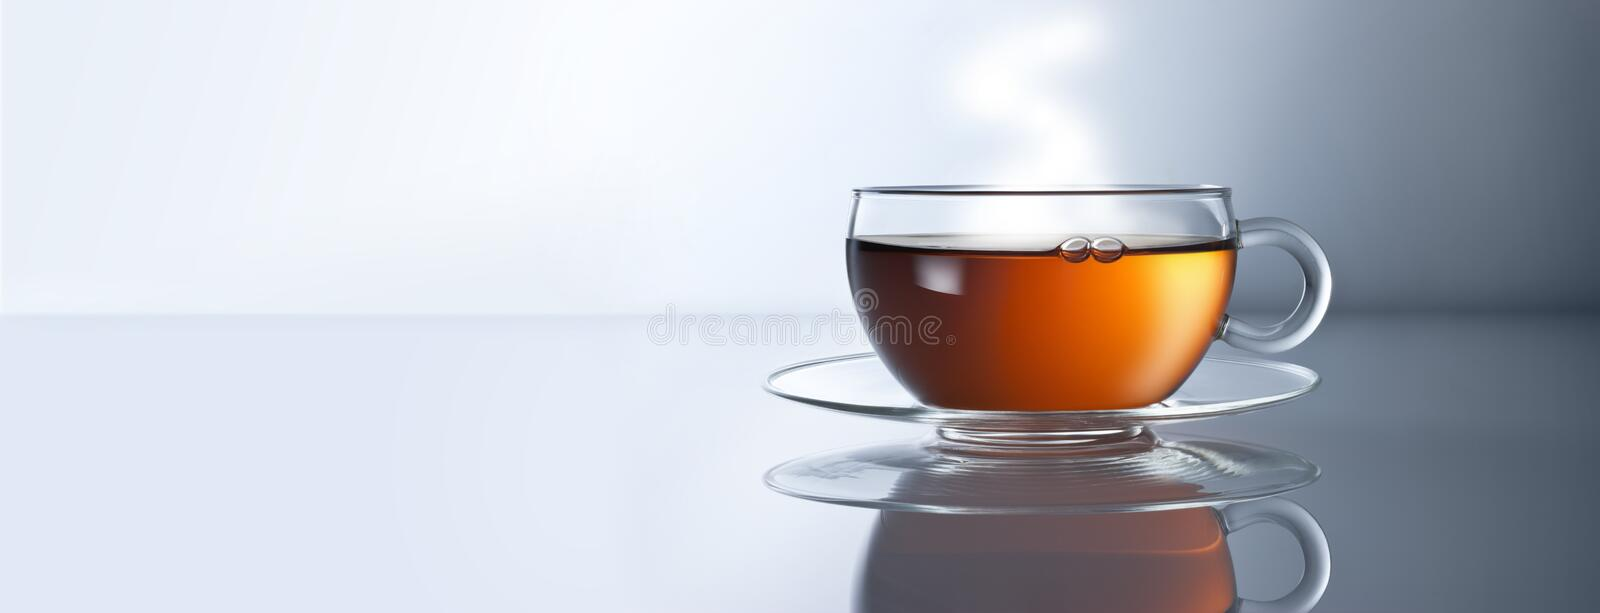 Tea Cup Banner Background royalty free stock images